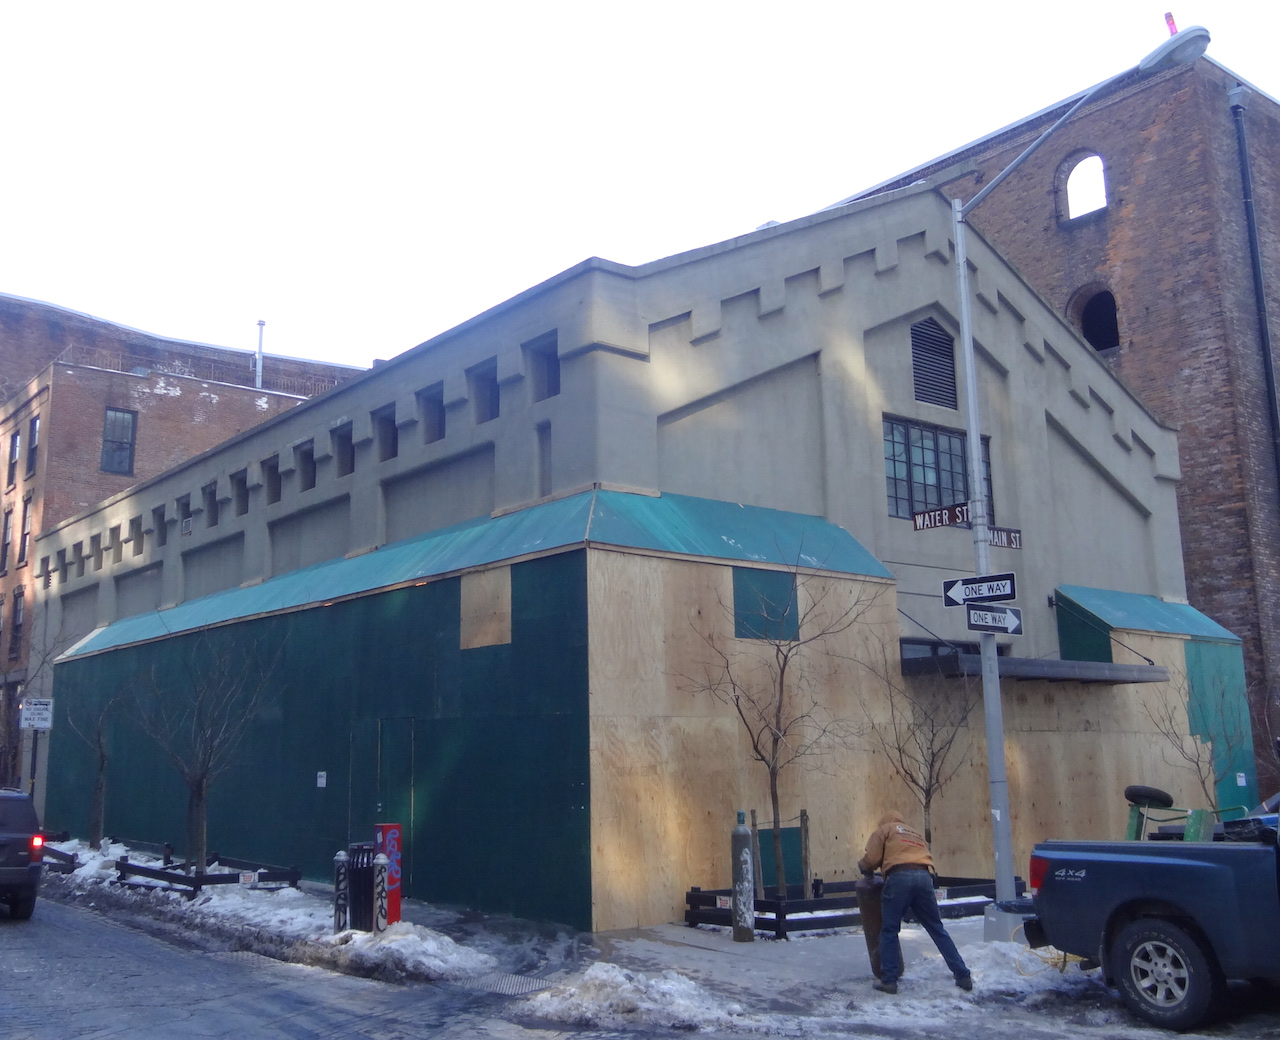 The former Galapagos Art Space building, which will soon house several galleries